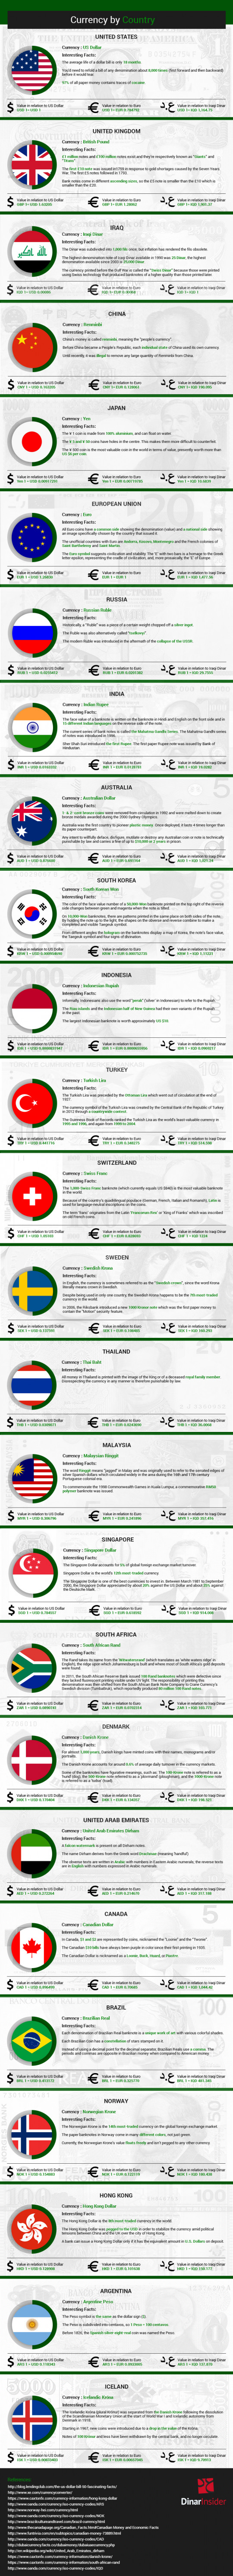 Currency By Country